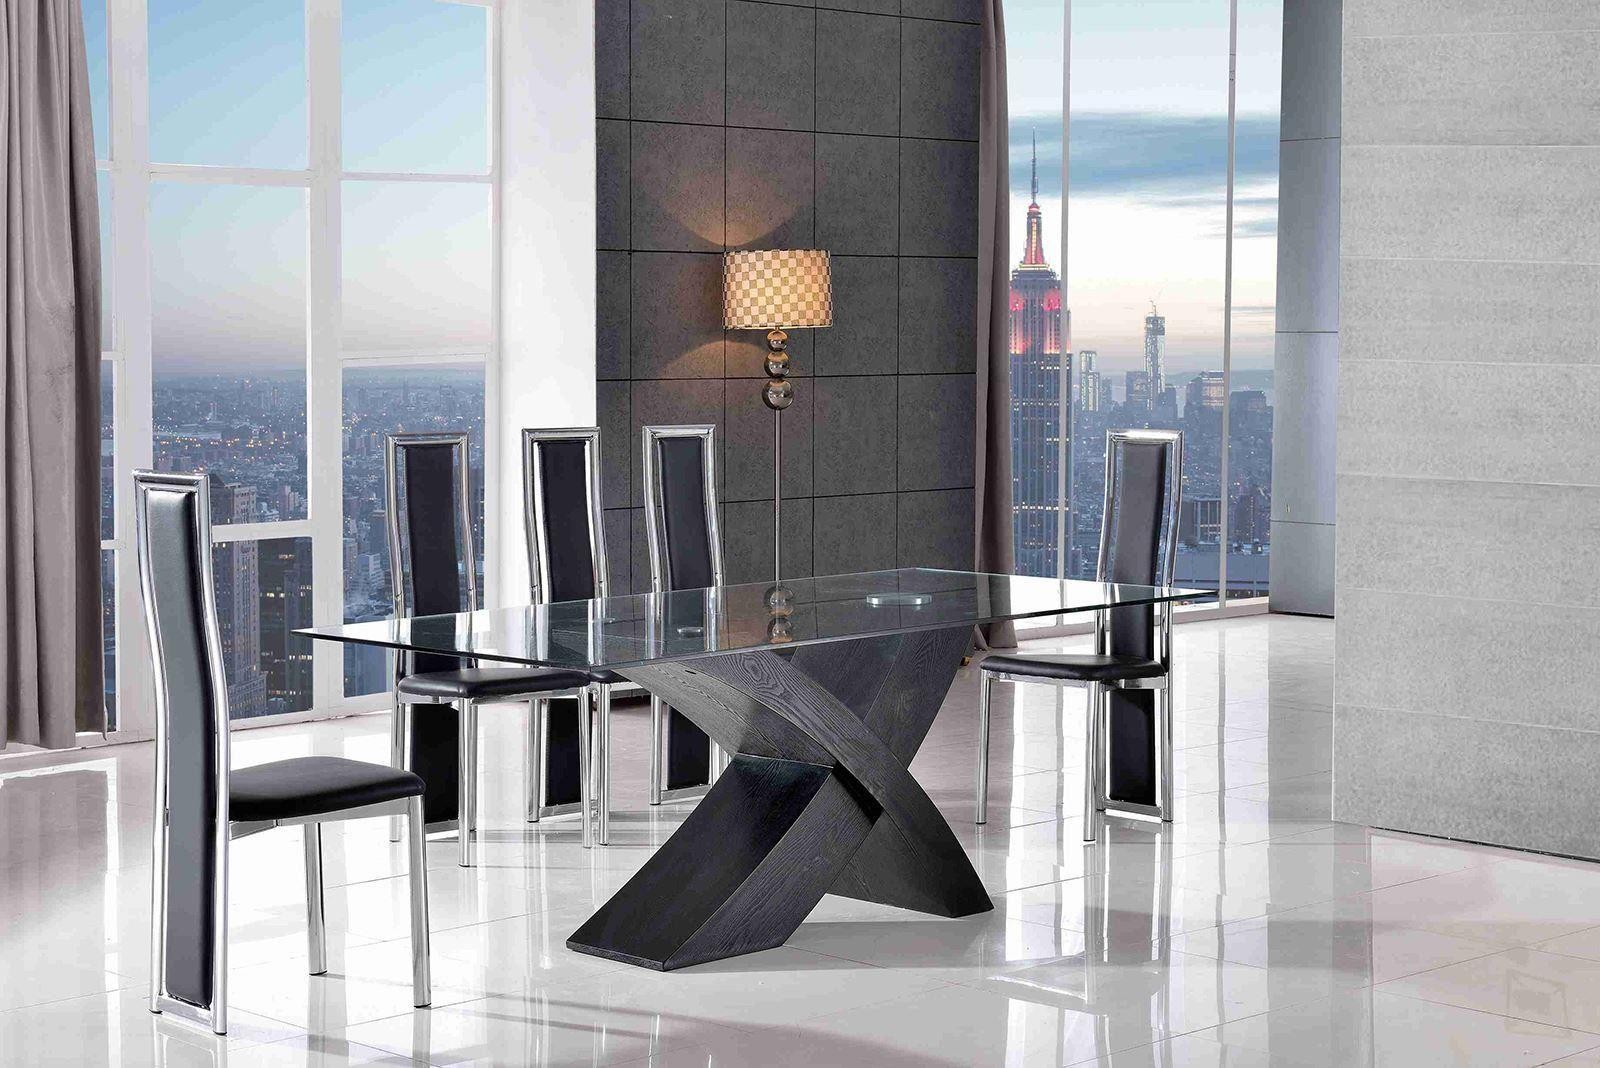 Valencia Black 160cm Wood and Glass Dining Table with 6 Elsa Designer Dining Chairs [Black]